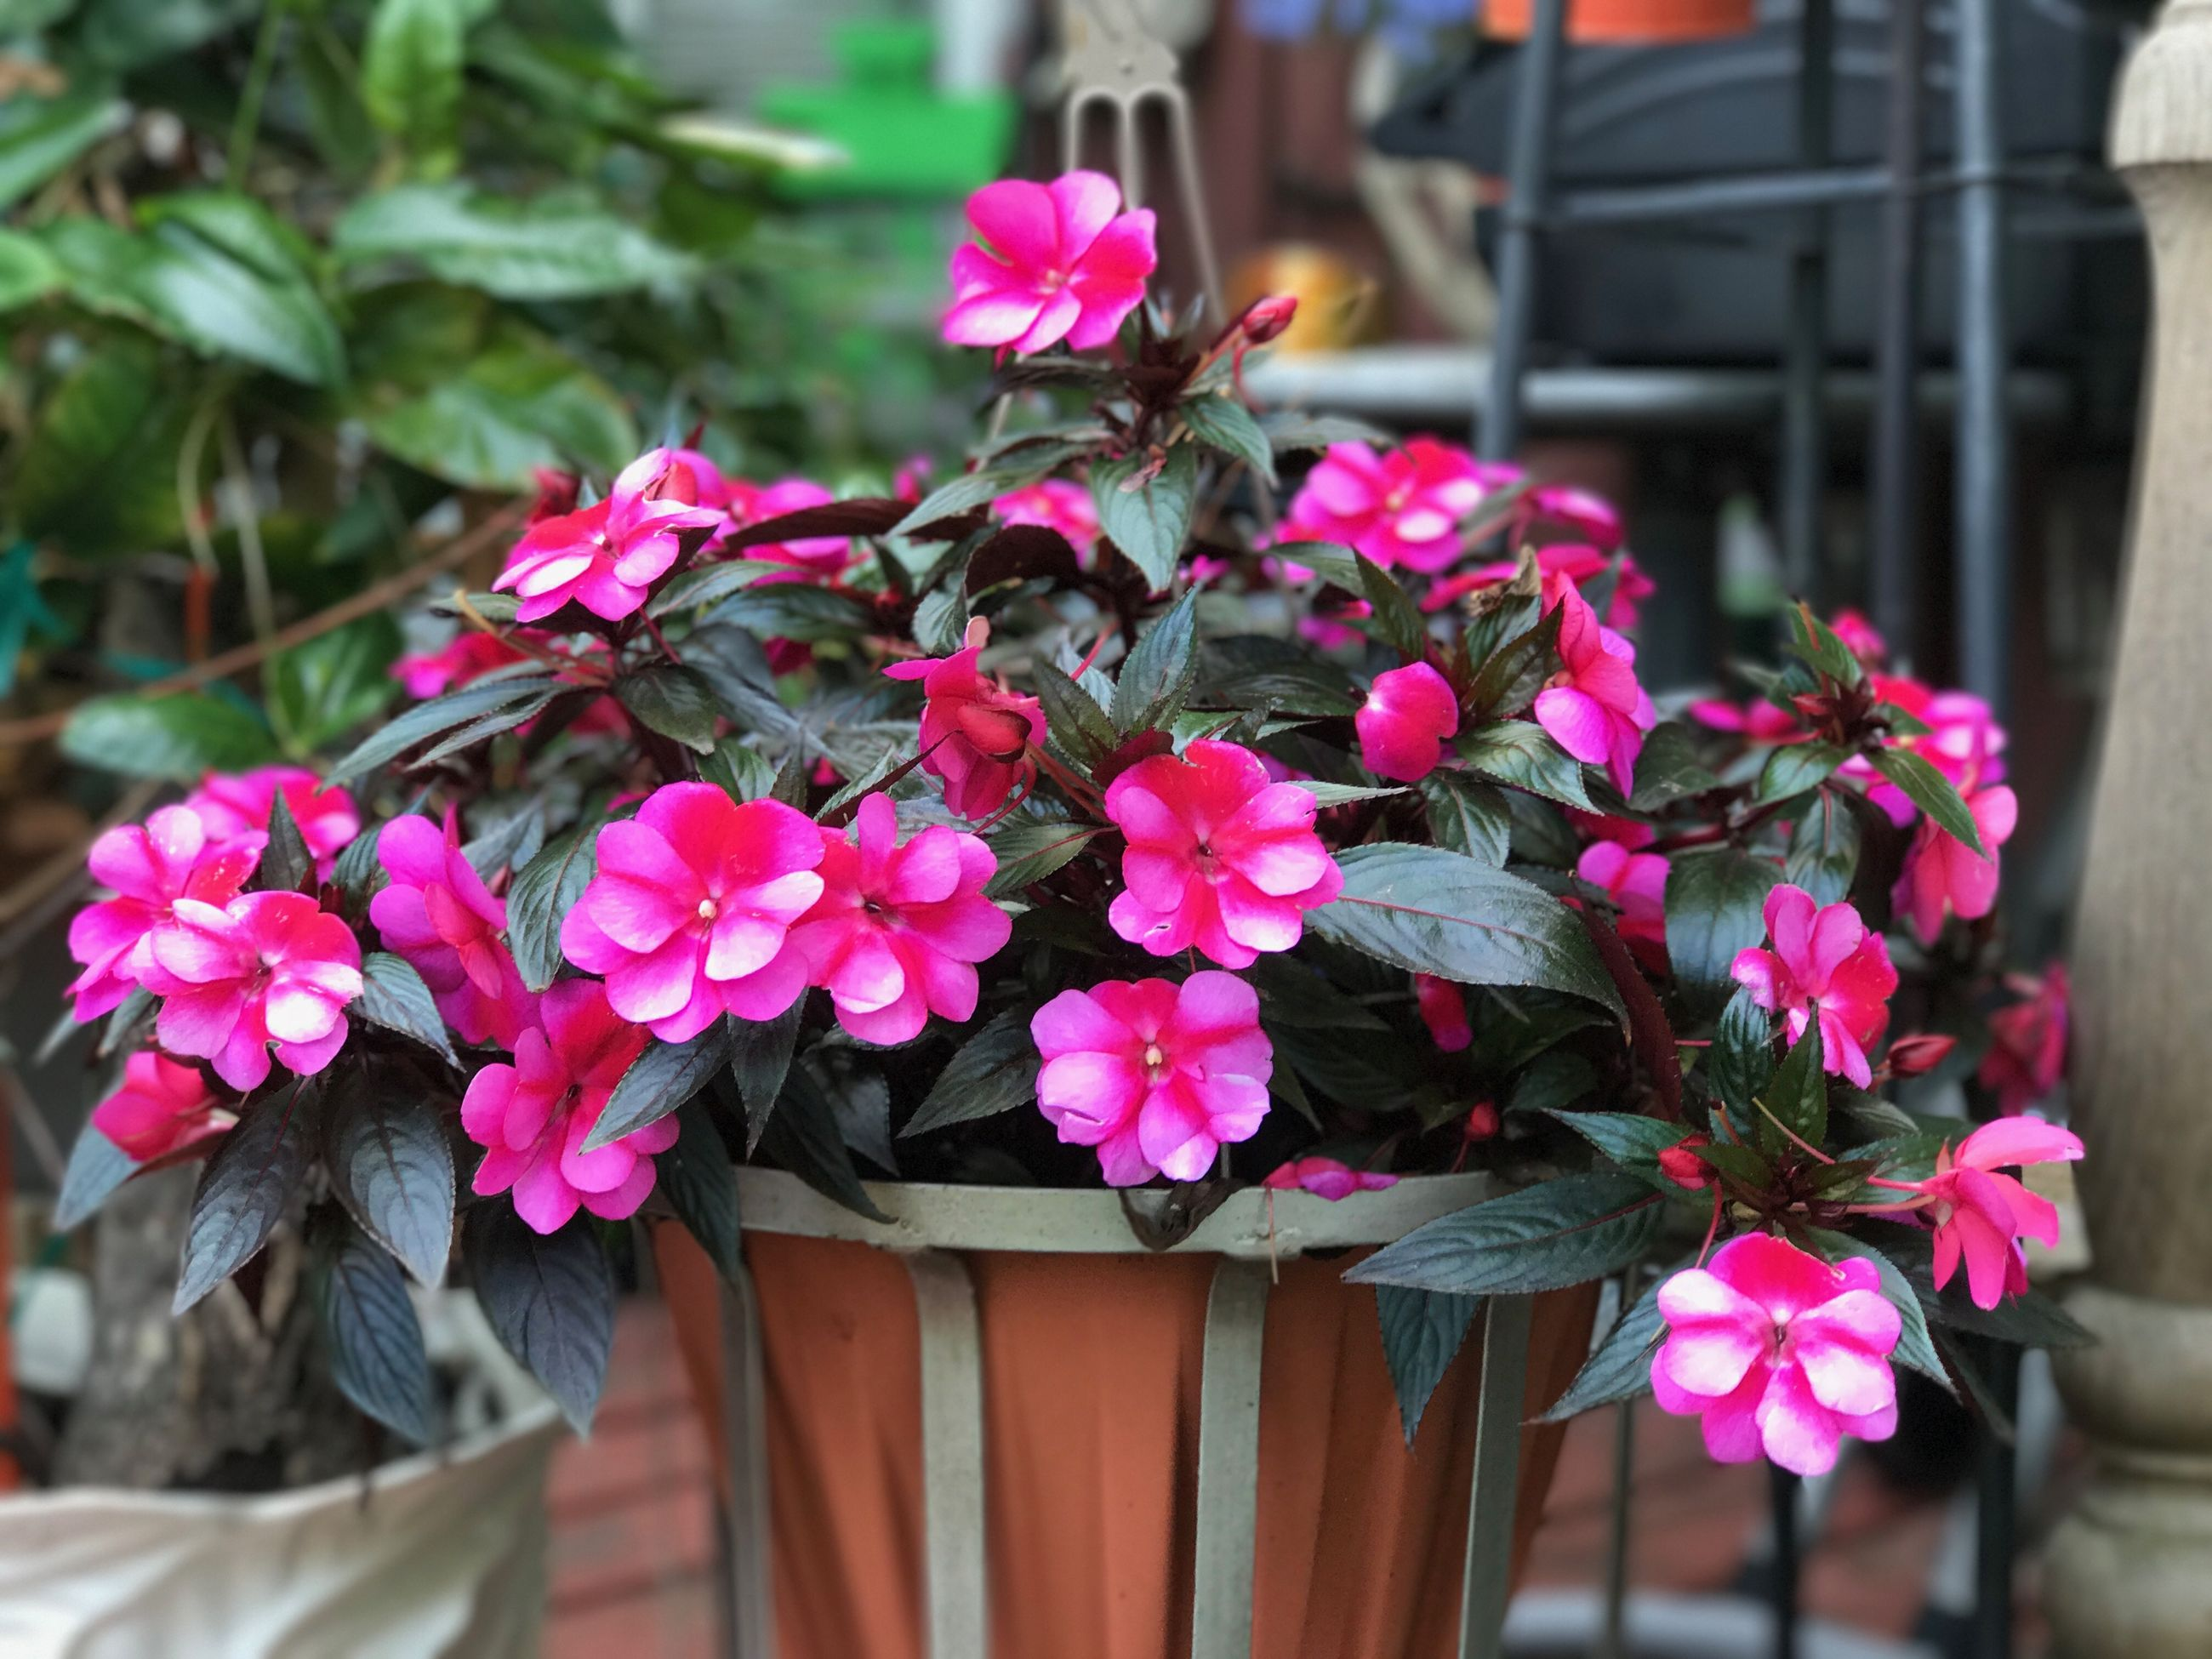 flower, pink color, no people, plant, growth, day, outdoors, nature, focus on foreground, potted plant, petal, freshness, beauty in nature, fragility, front or back yard, close-up, blooming, leaf, flower head, periwinkle